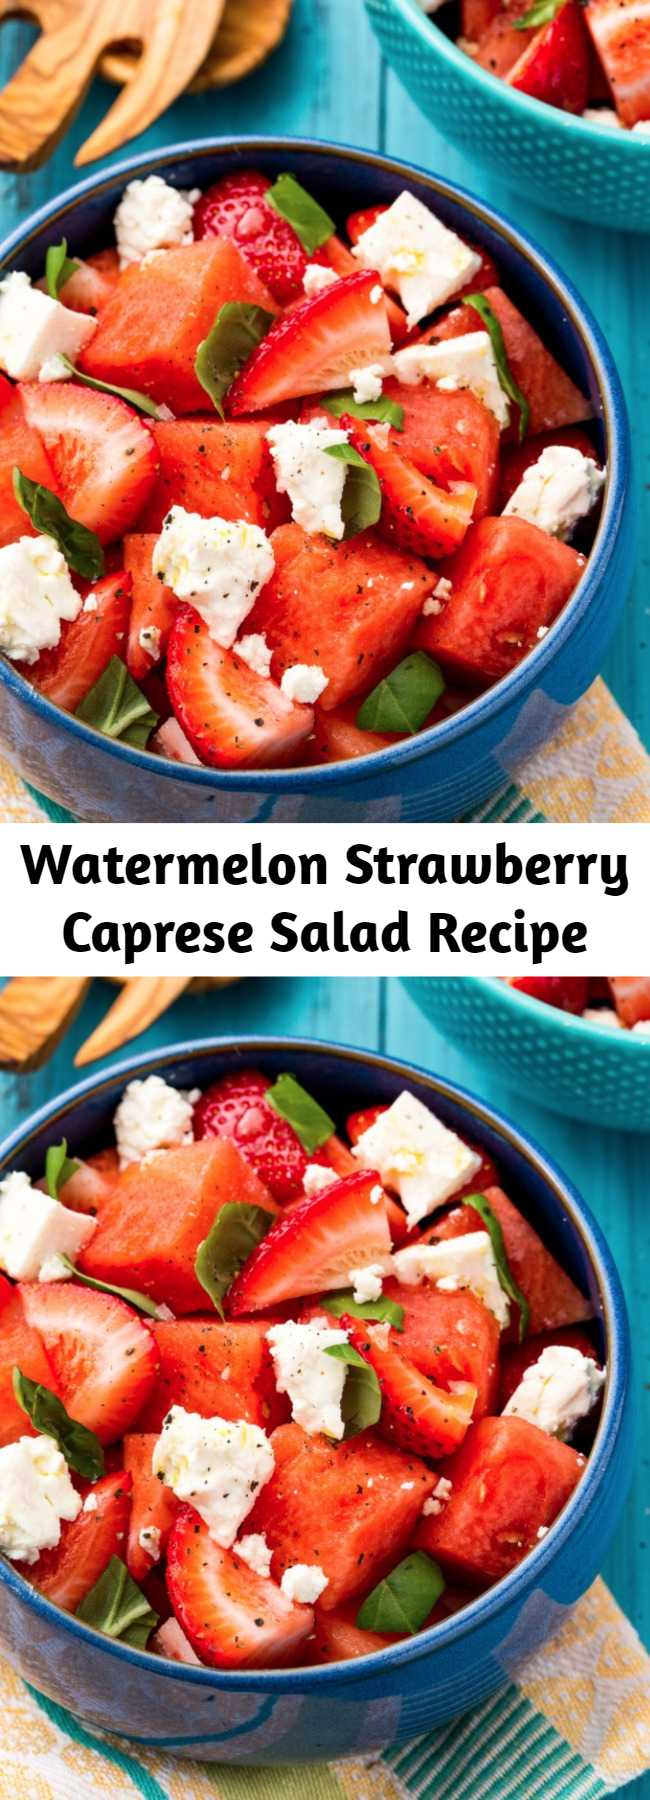 Watermelon Strawberry Caprese Salad Recipe - Switch up your summer salad game with this Watermelon Strawberry Caprese. Your guests are sure to go wild for this one.